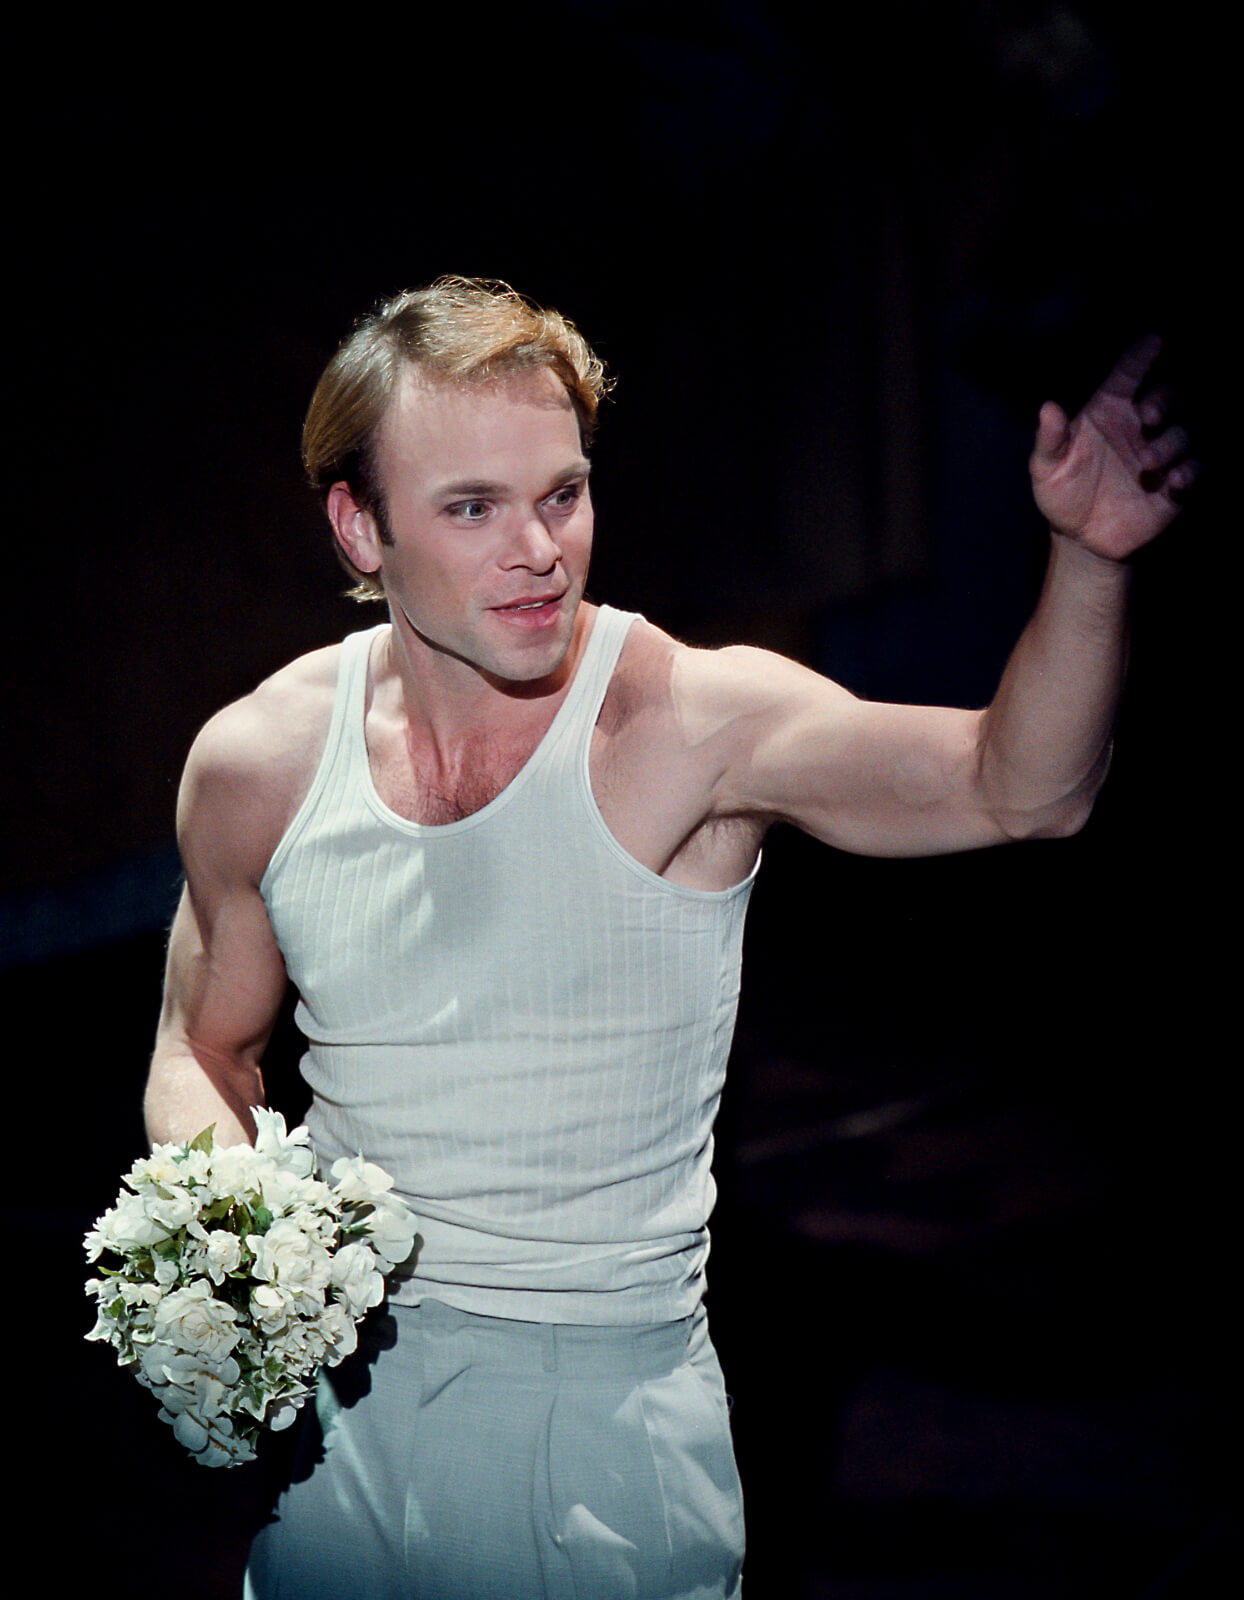 Camille Raquin (Norbert Leo Butz) in a white top, holding a small bouquet of white flowers